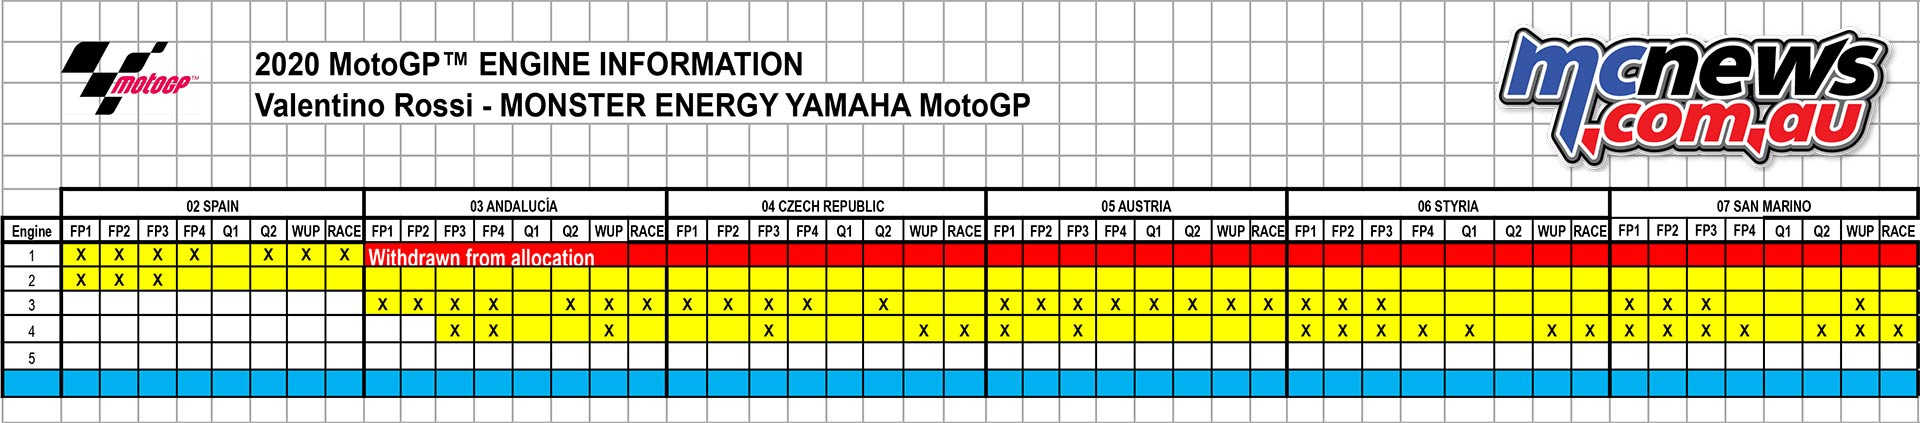 Could Engine Issues Cost Yamaha A Motogp World Championship Motorcycle News Sport And Reviews